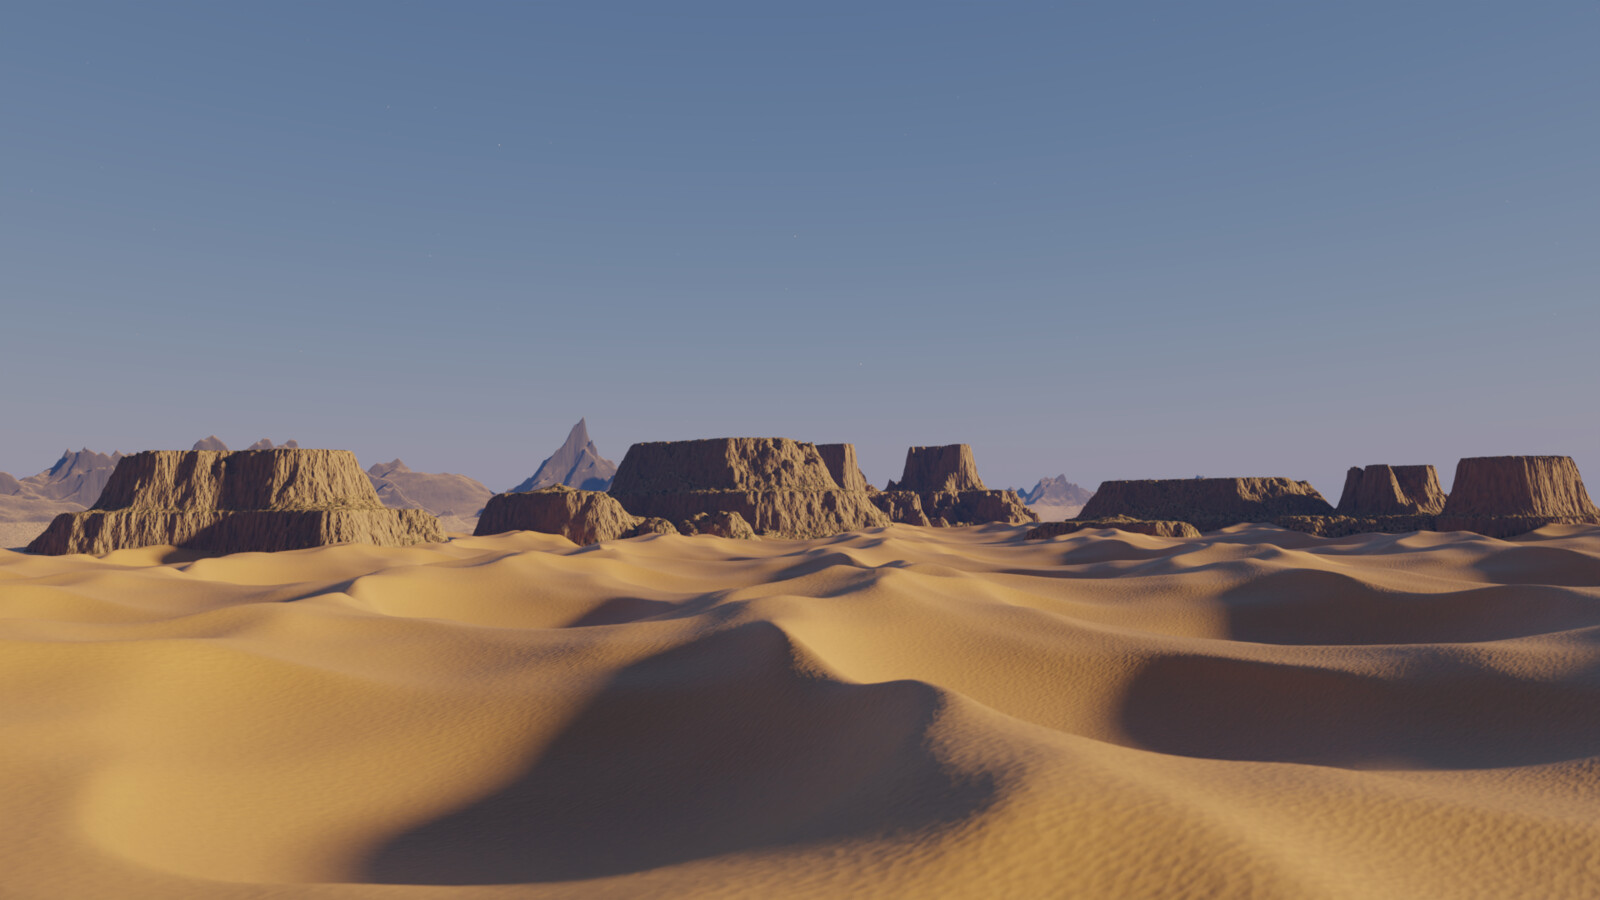 After color tweaking, additional landscapes, texture and atmosphere tweaking